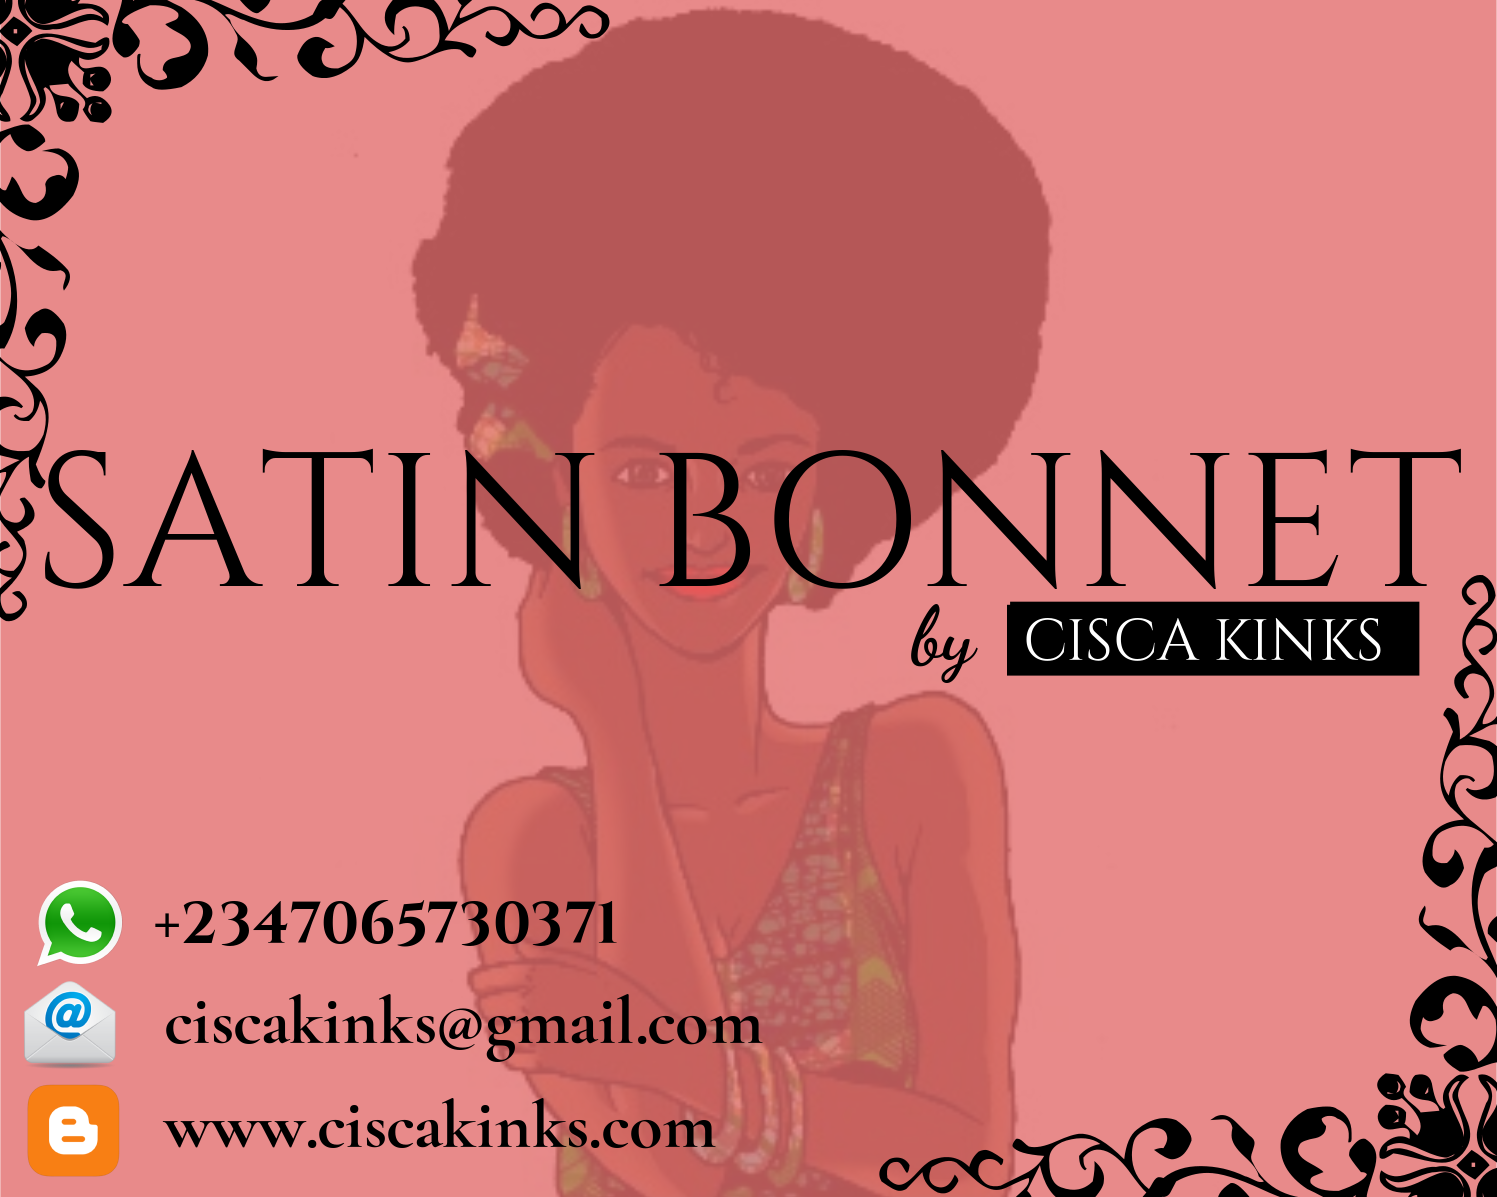 SHOP SATIN BONNETS